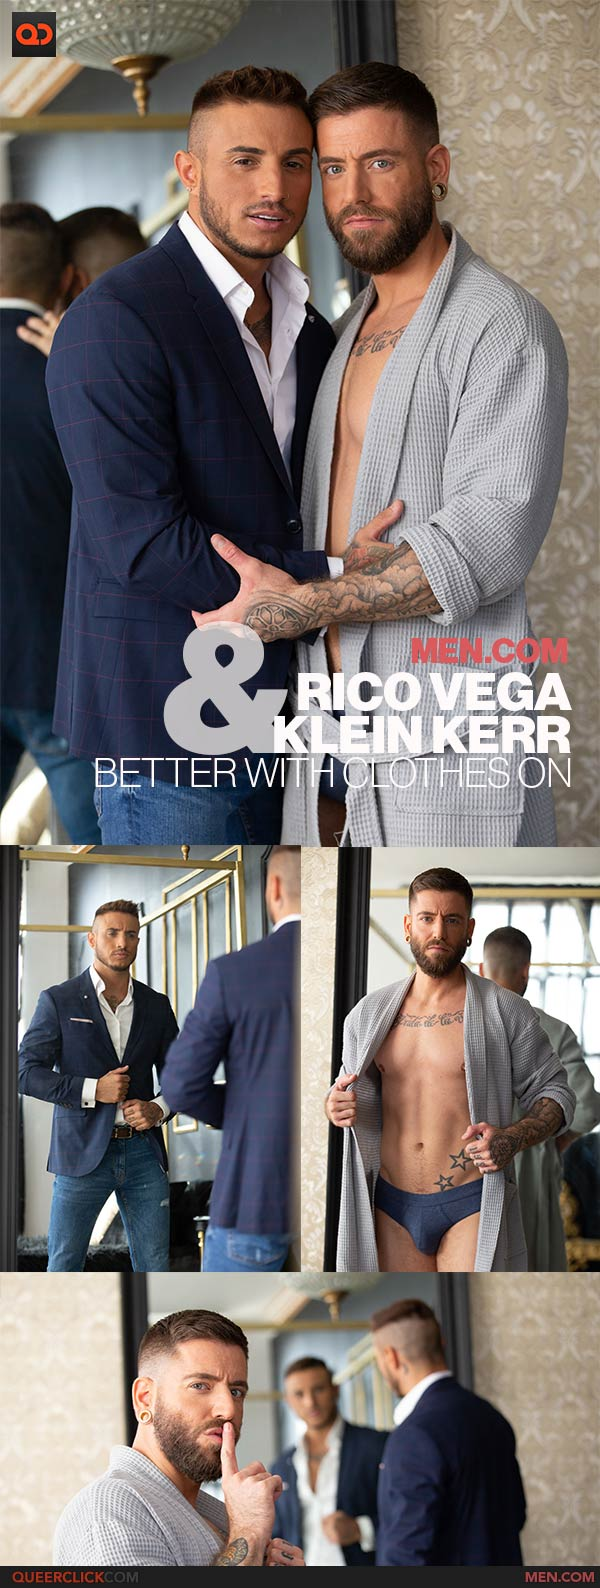 Men.com: Rico Vega and Klein Kerr